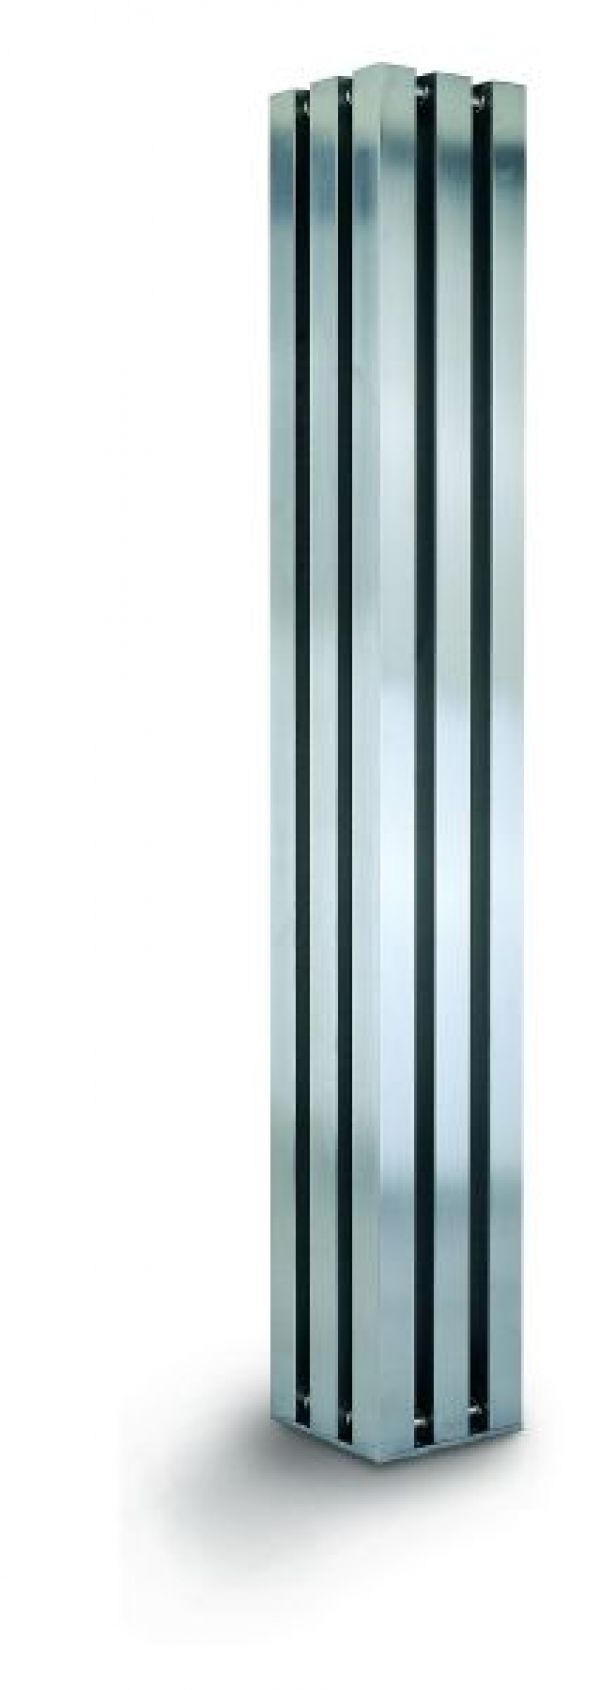 radiateur contemporain loft ForRadiateur Contemporain